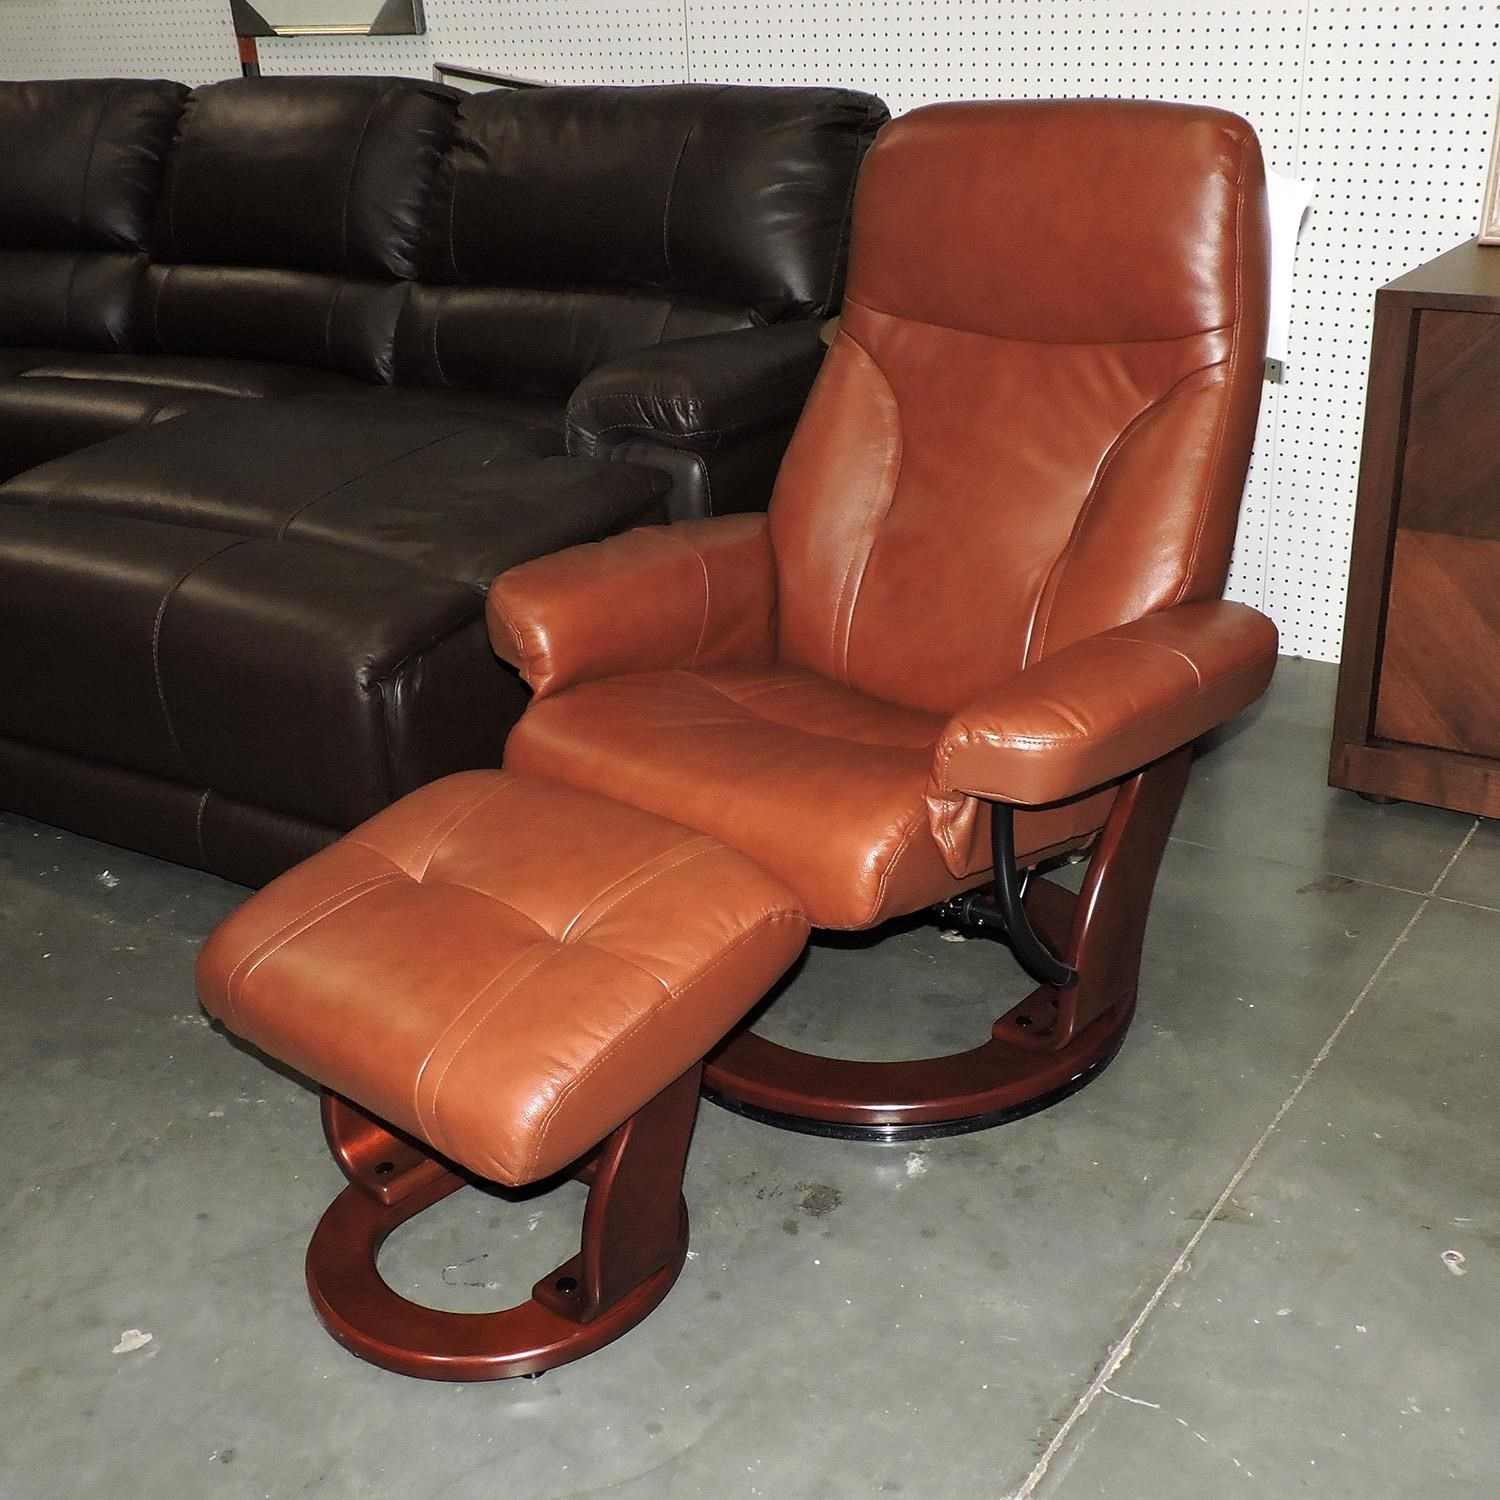 Benchmaster Clearance Milano Recliner and Ottoman - Item Number: 544118972